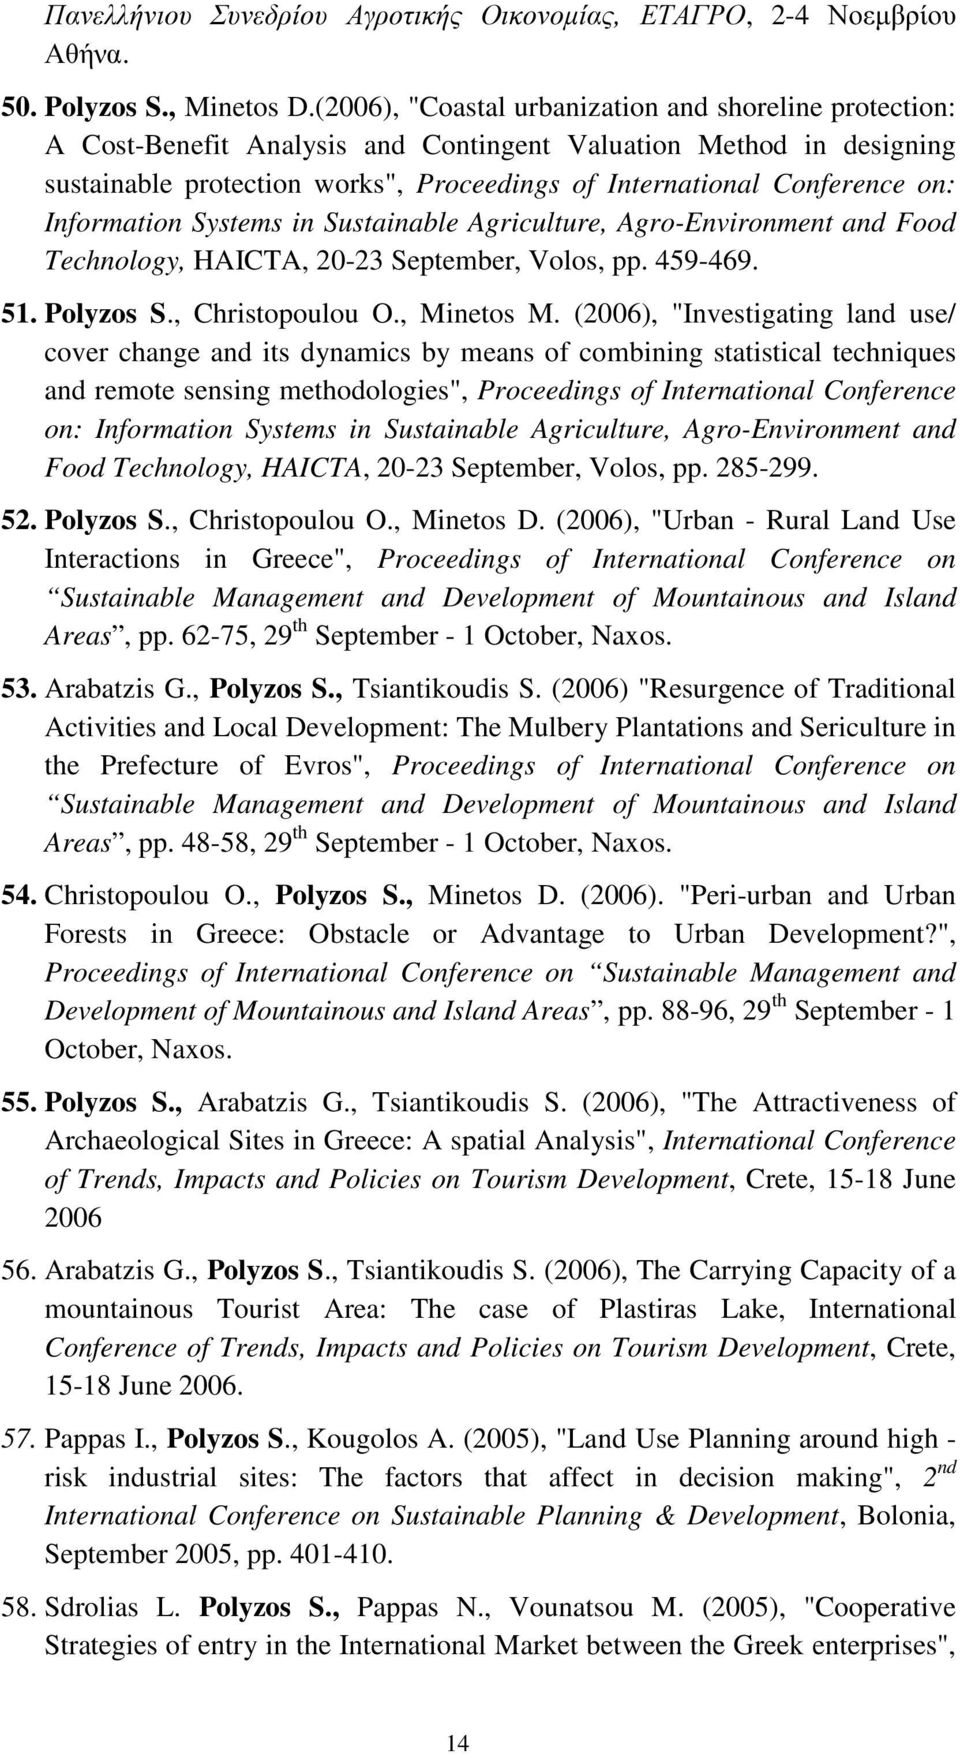 Information Systems in Sustainable Agriculture, Agro-Environment and Food Technology, HAICTA, 20-23 September, Volos, pp. 459-469. 51. Polyzos S., Christopoulou O., Minetos M.